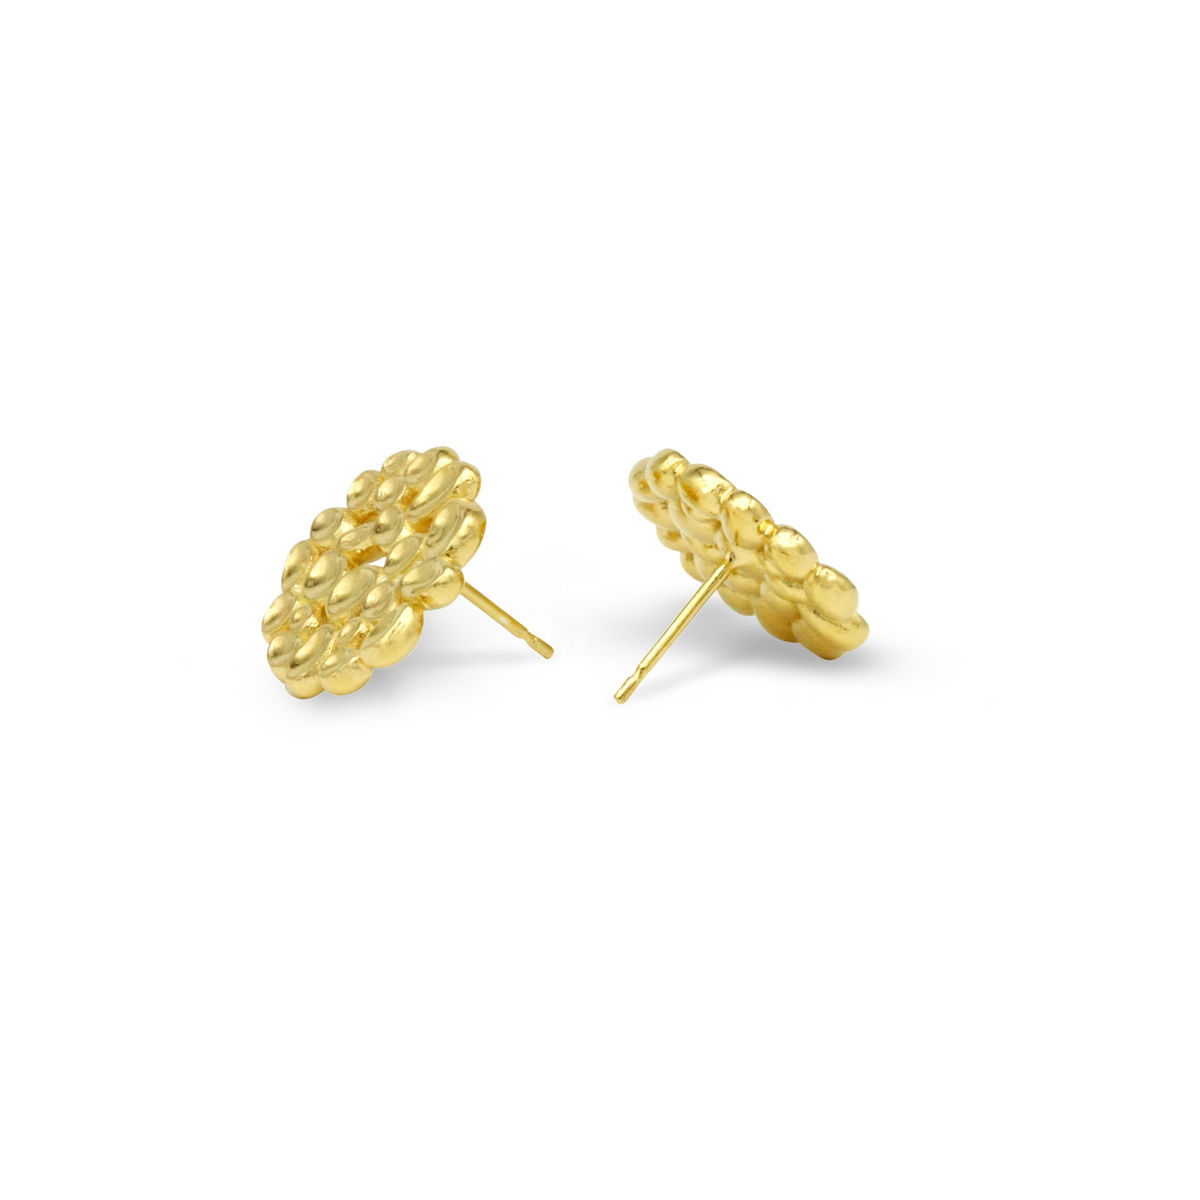 SHIMMER Array stud earrings - gold plated sterling silver - product images  of